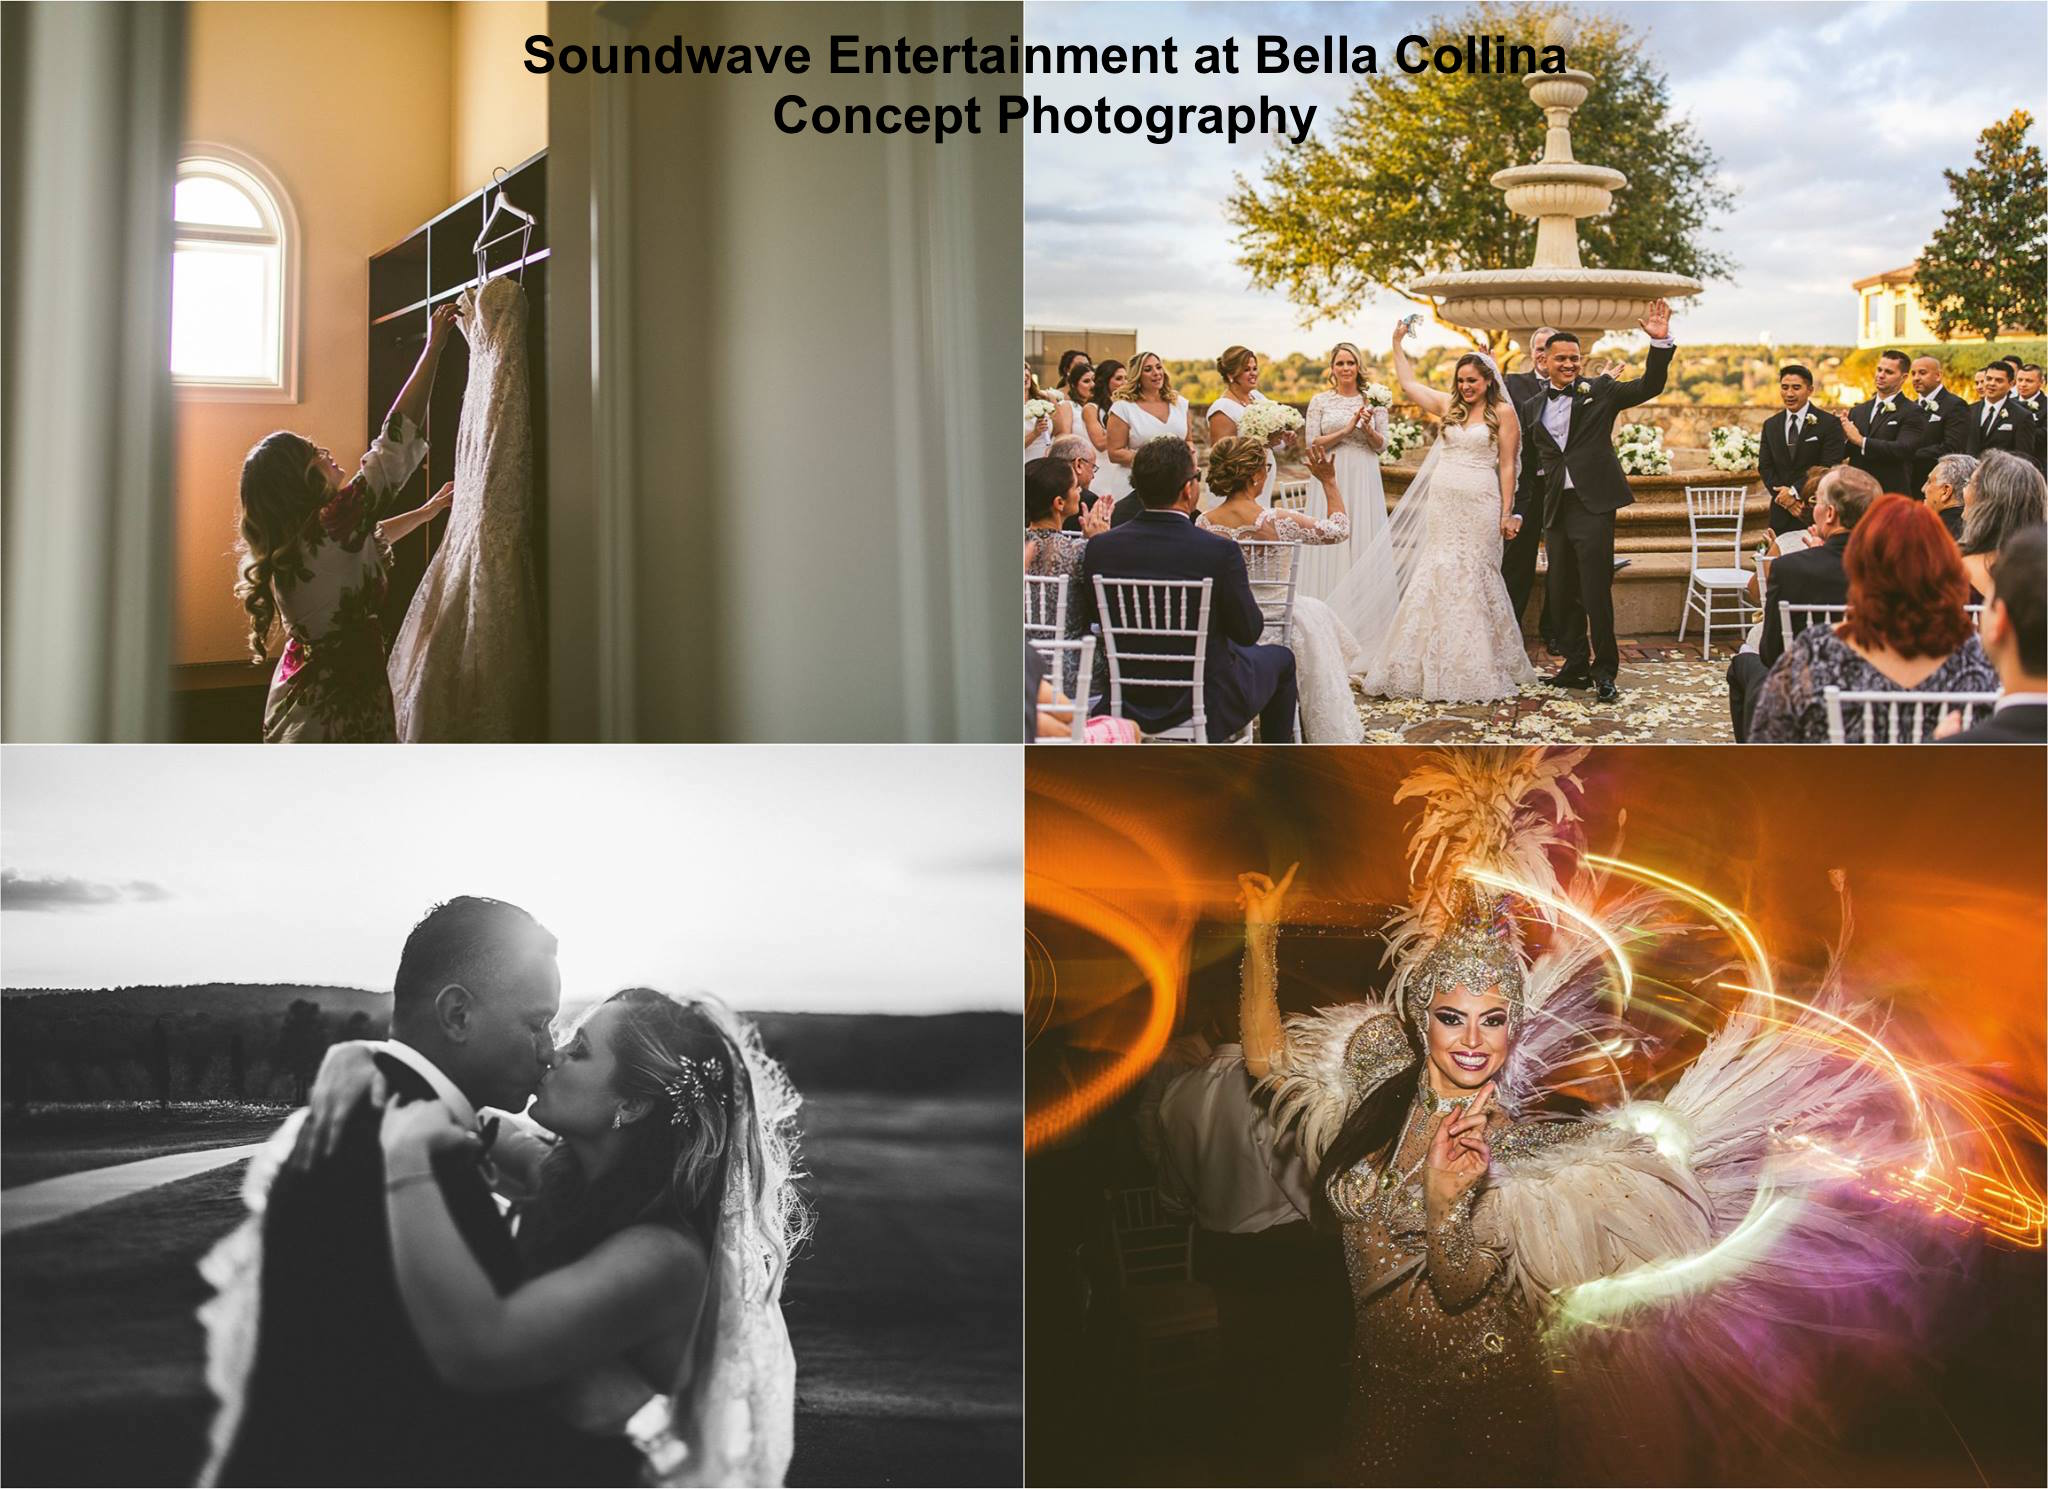 soundwave entertainment - wedding blog - bella collina, - orlando, fl